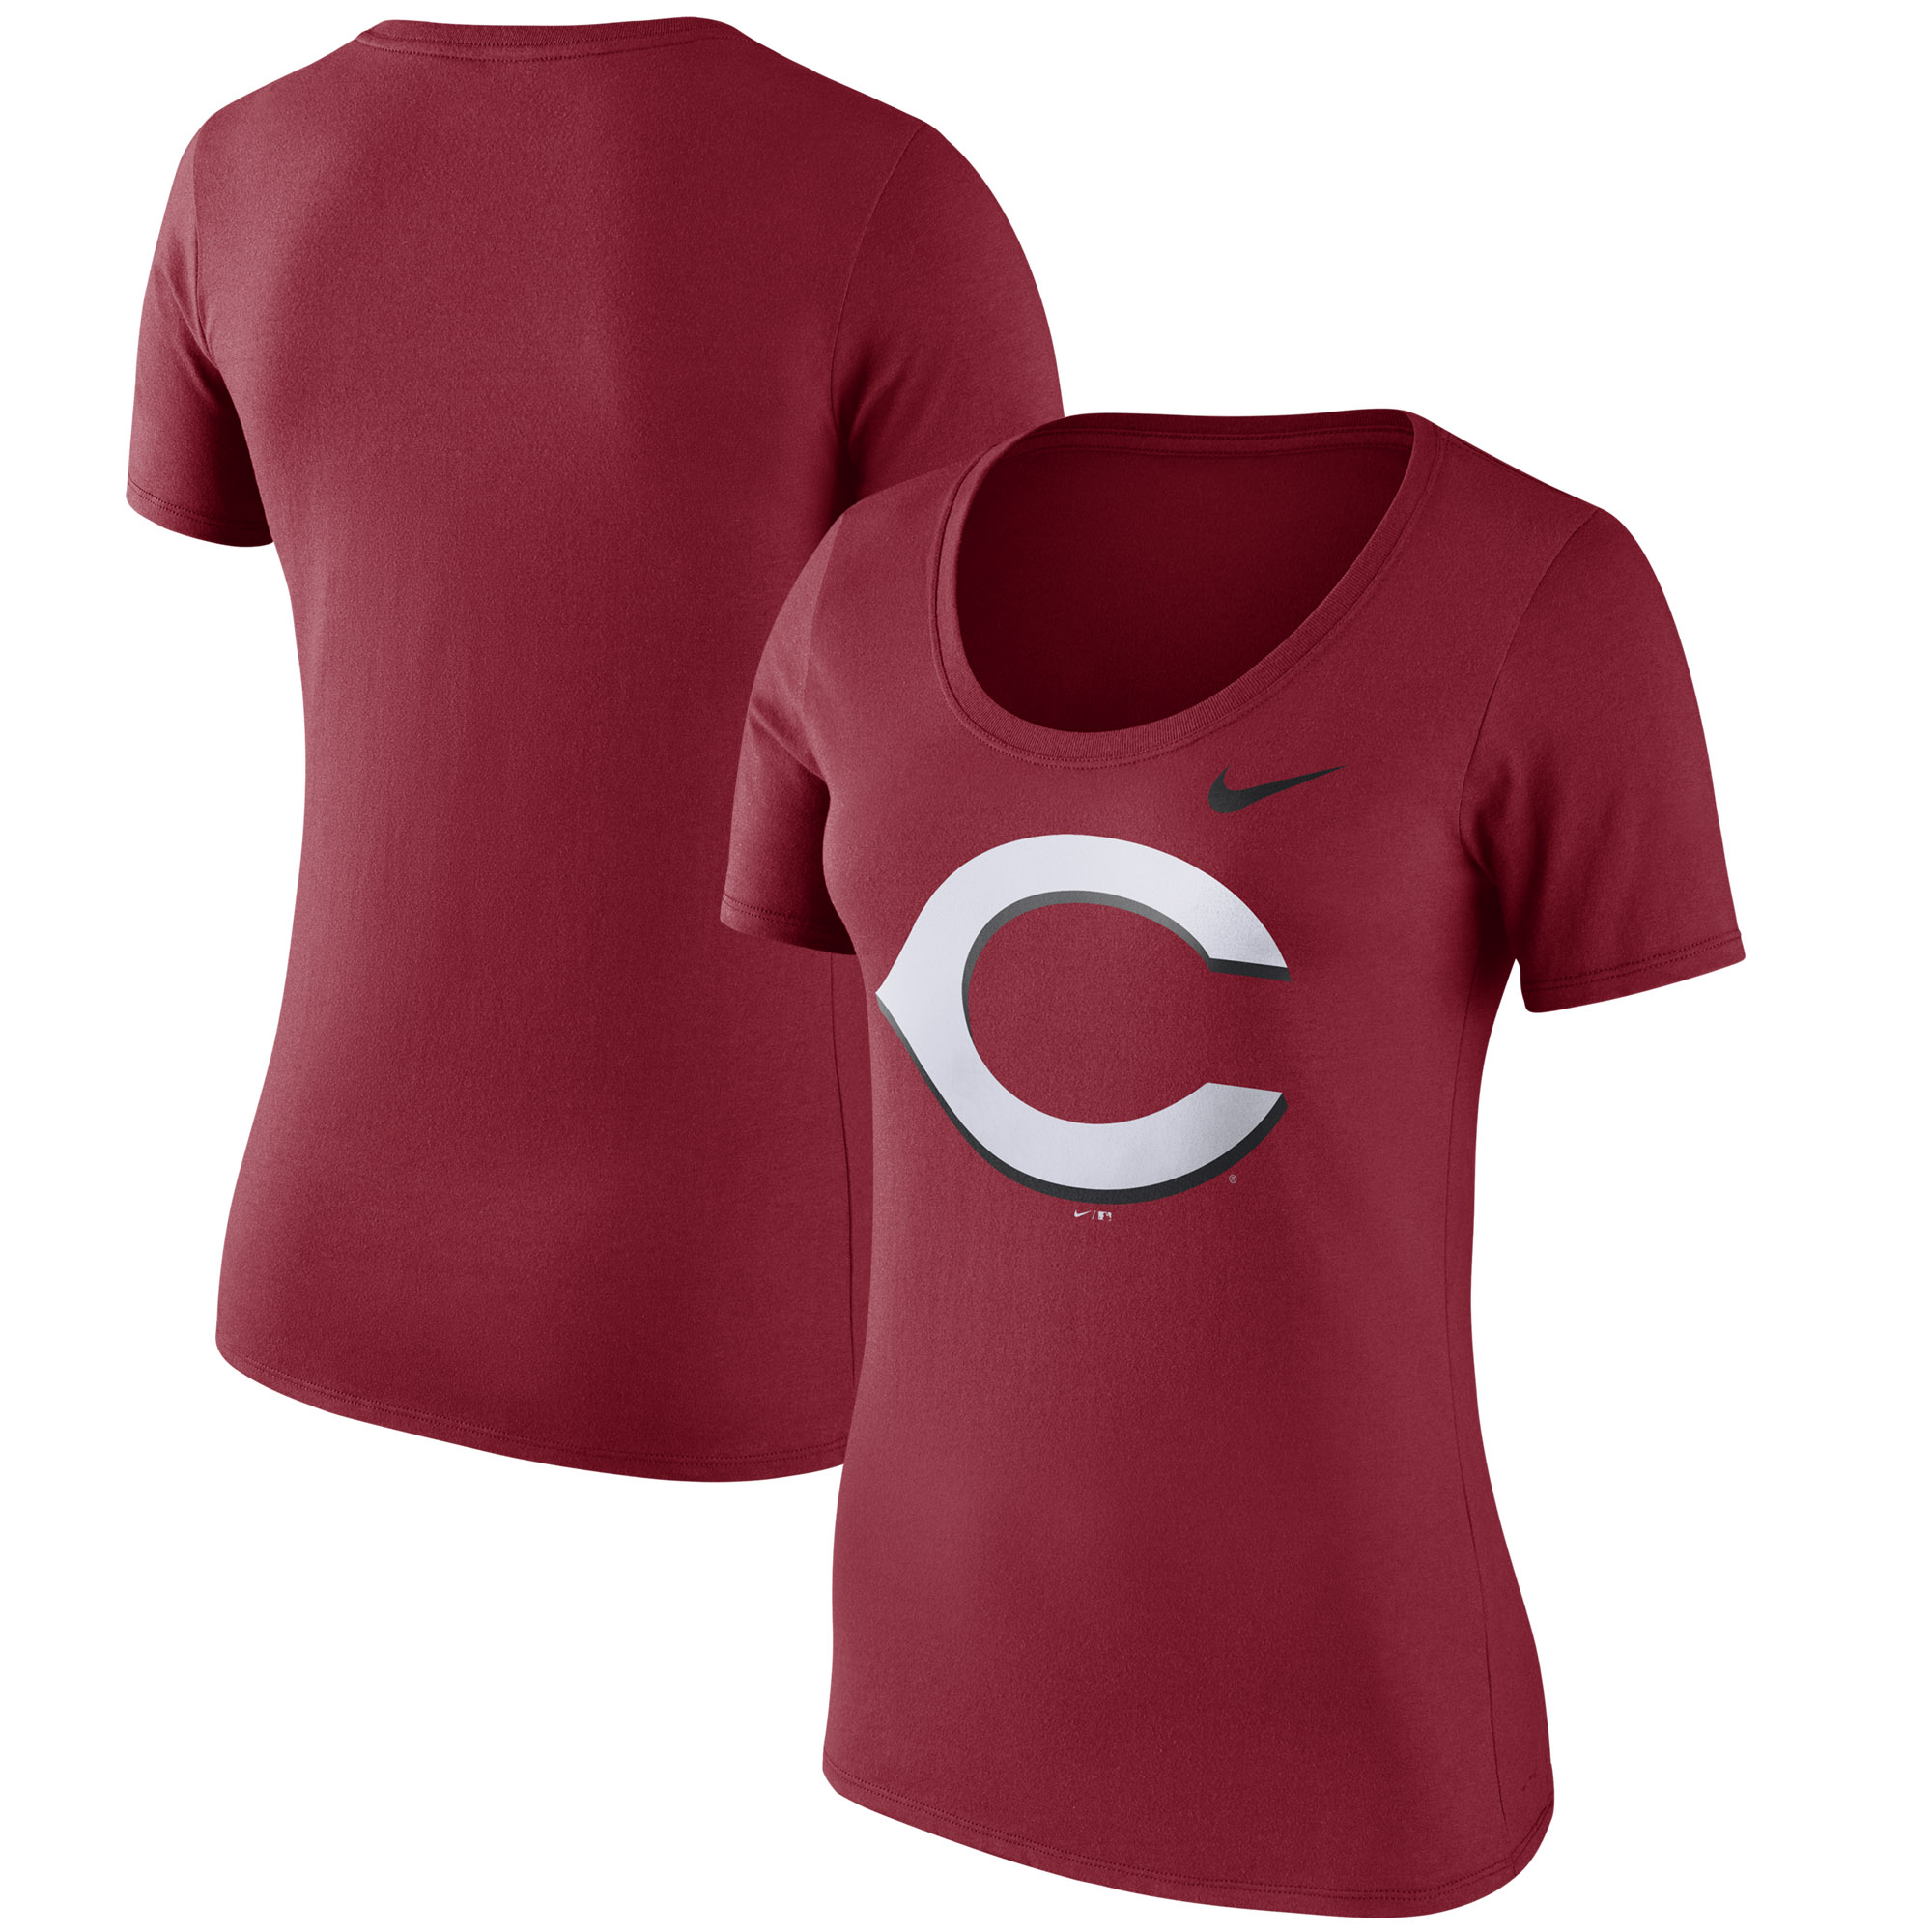 Cincinnati Reds Nike Women's Logo Scoop Neck T-Shirt - Red